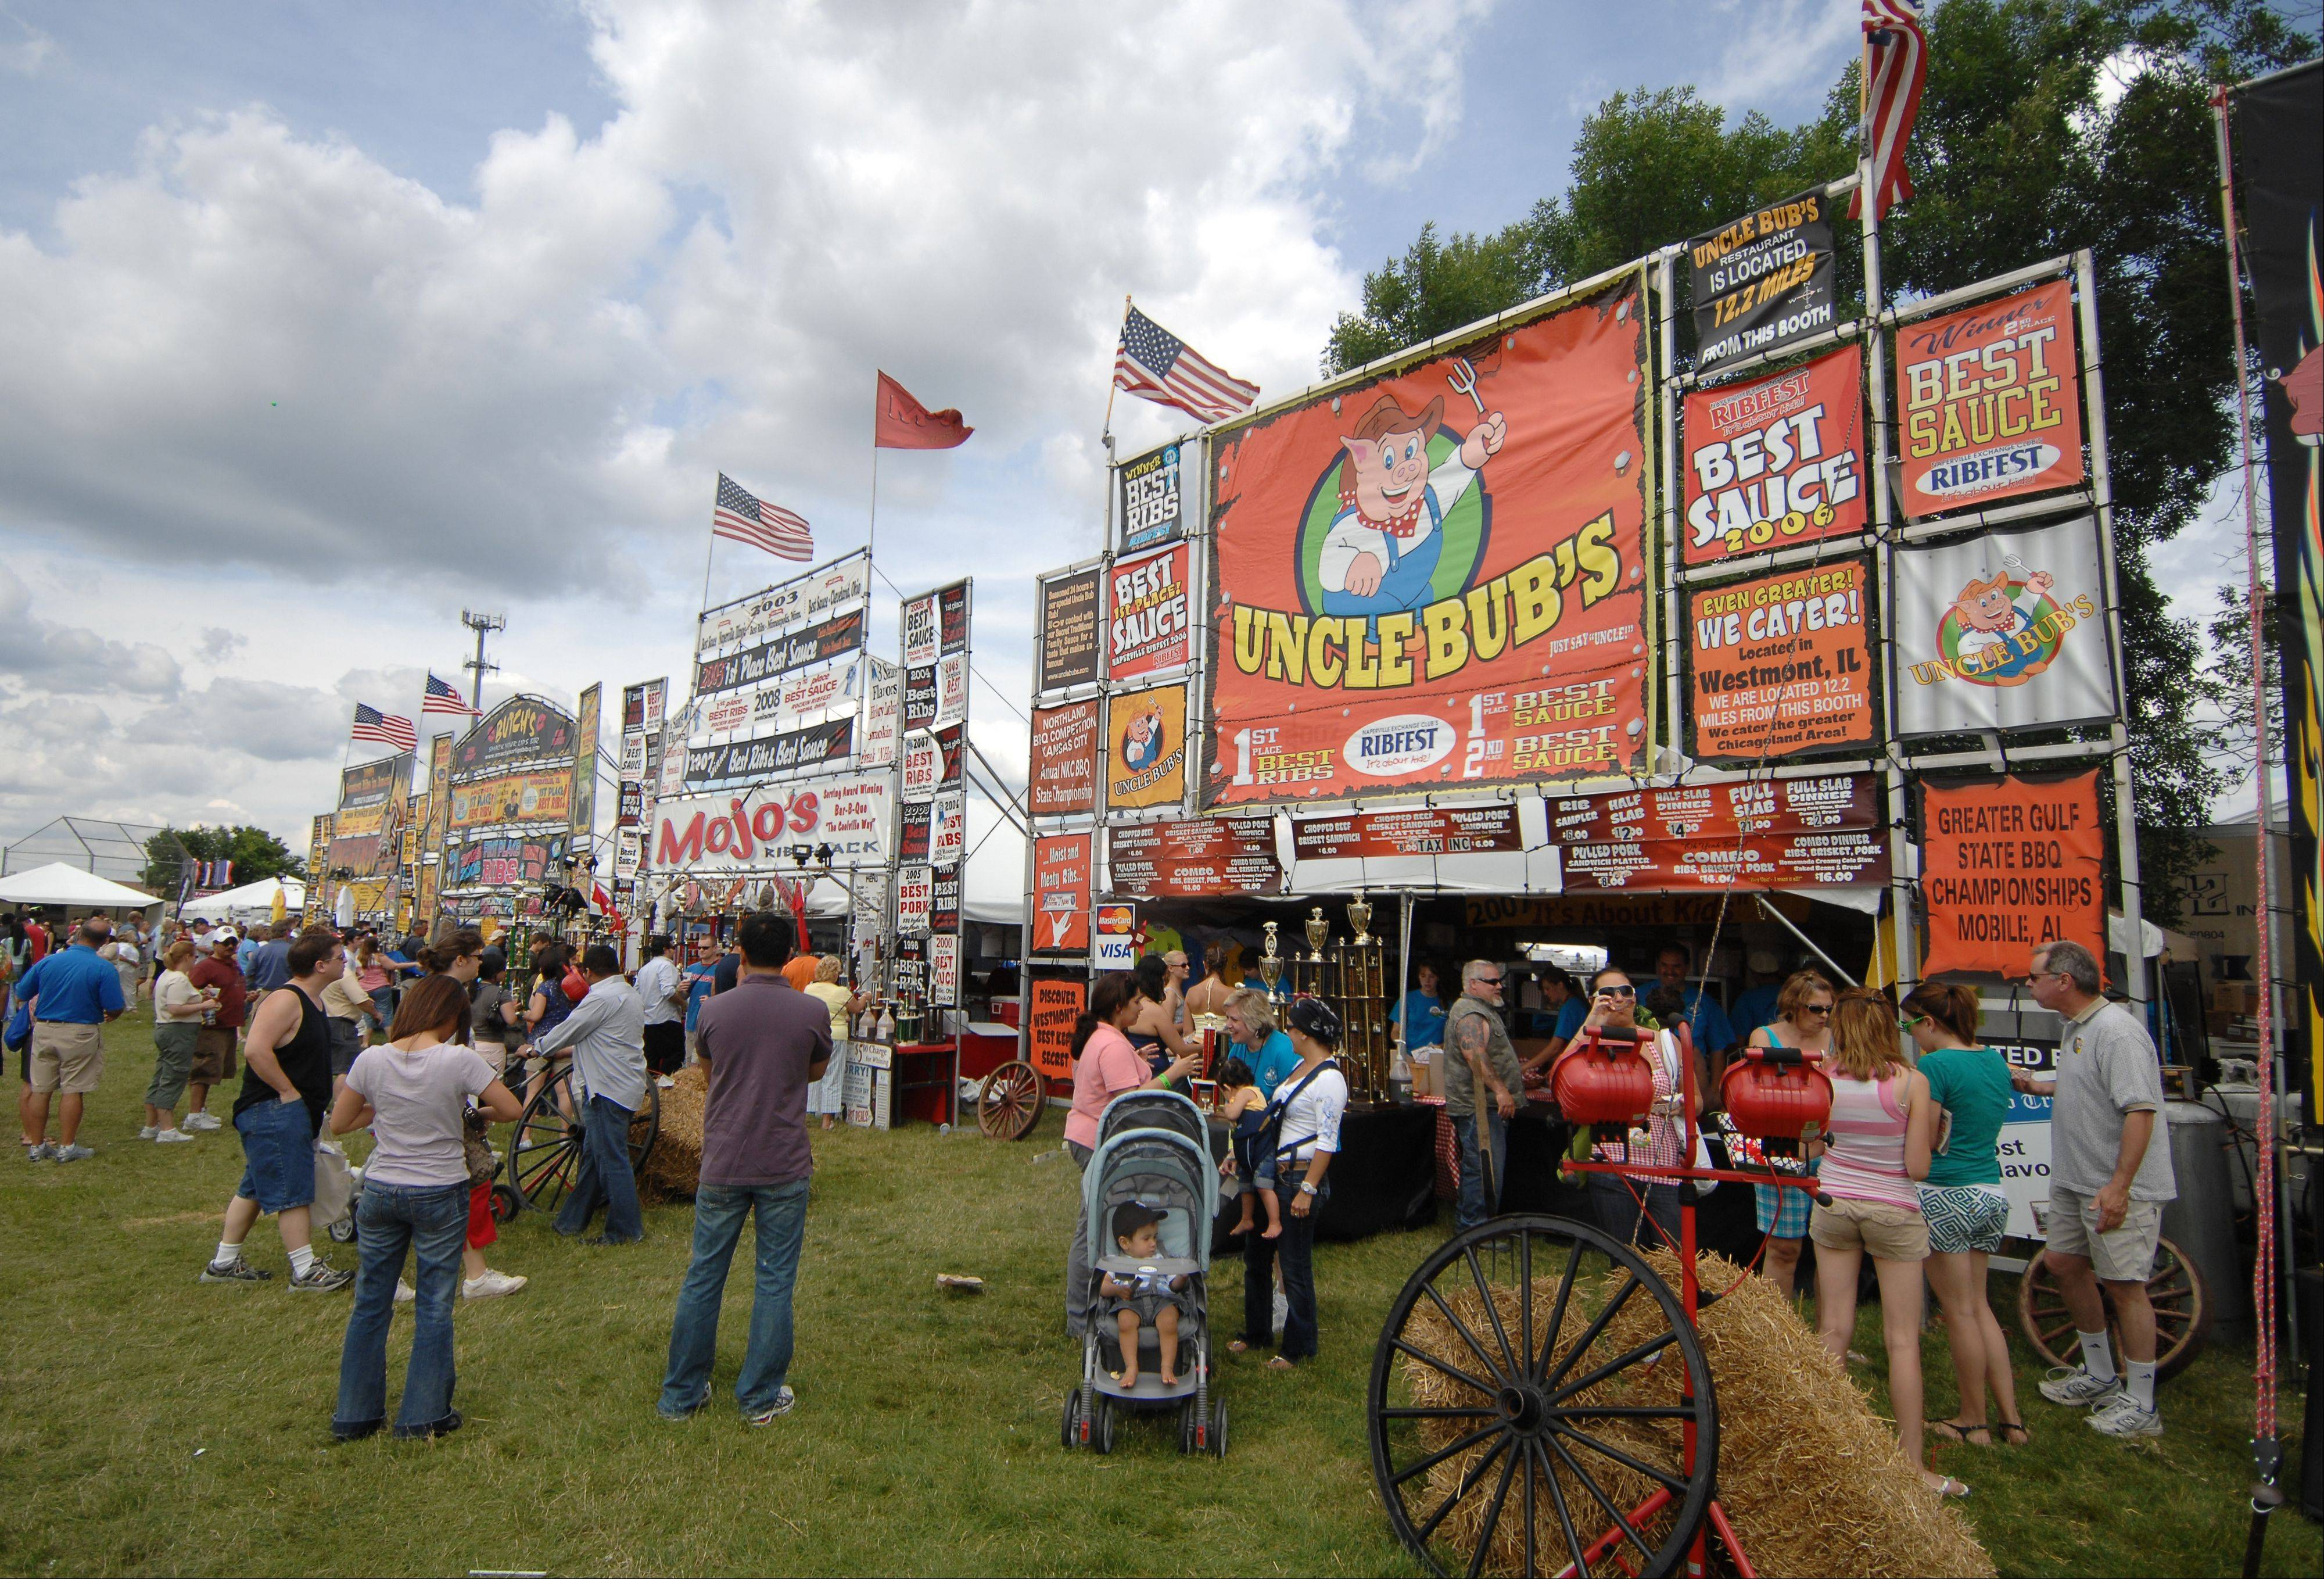 Naperville's Ribfest to donate $548,000 to charity